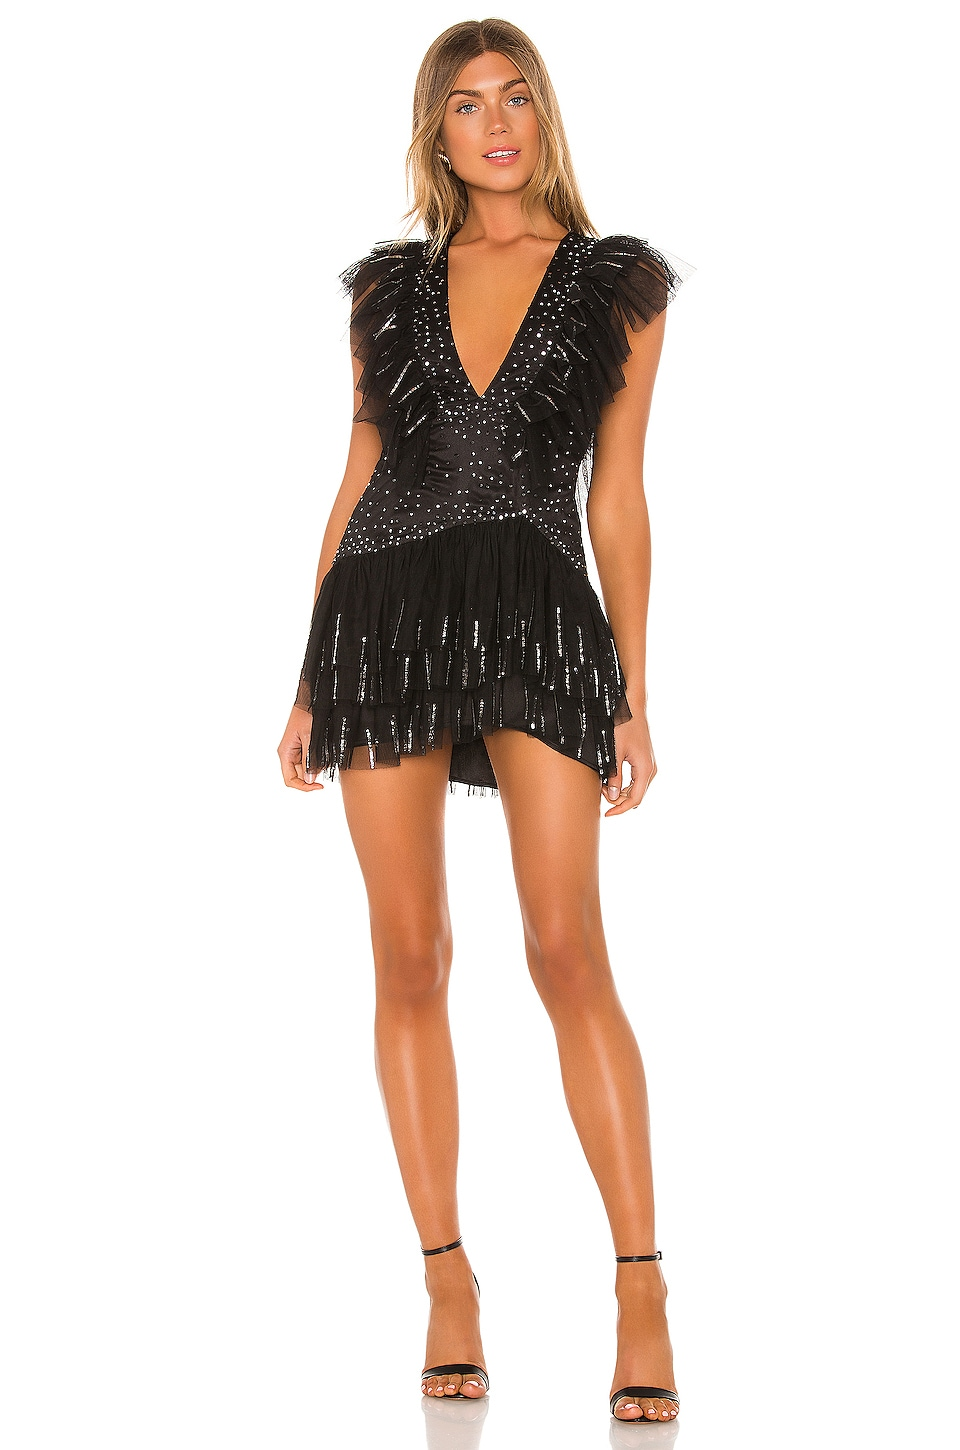 Tularosa Ambre Embellished Mini Dress in Black